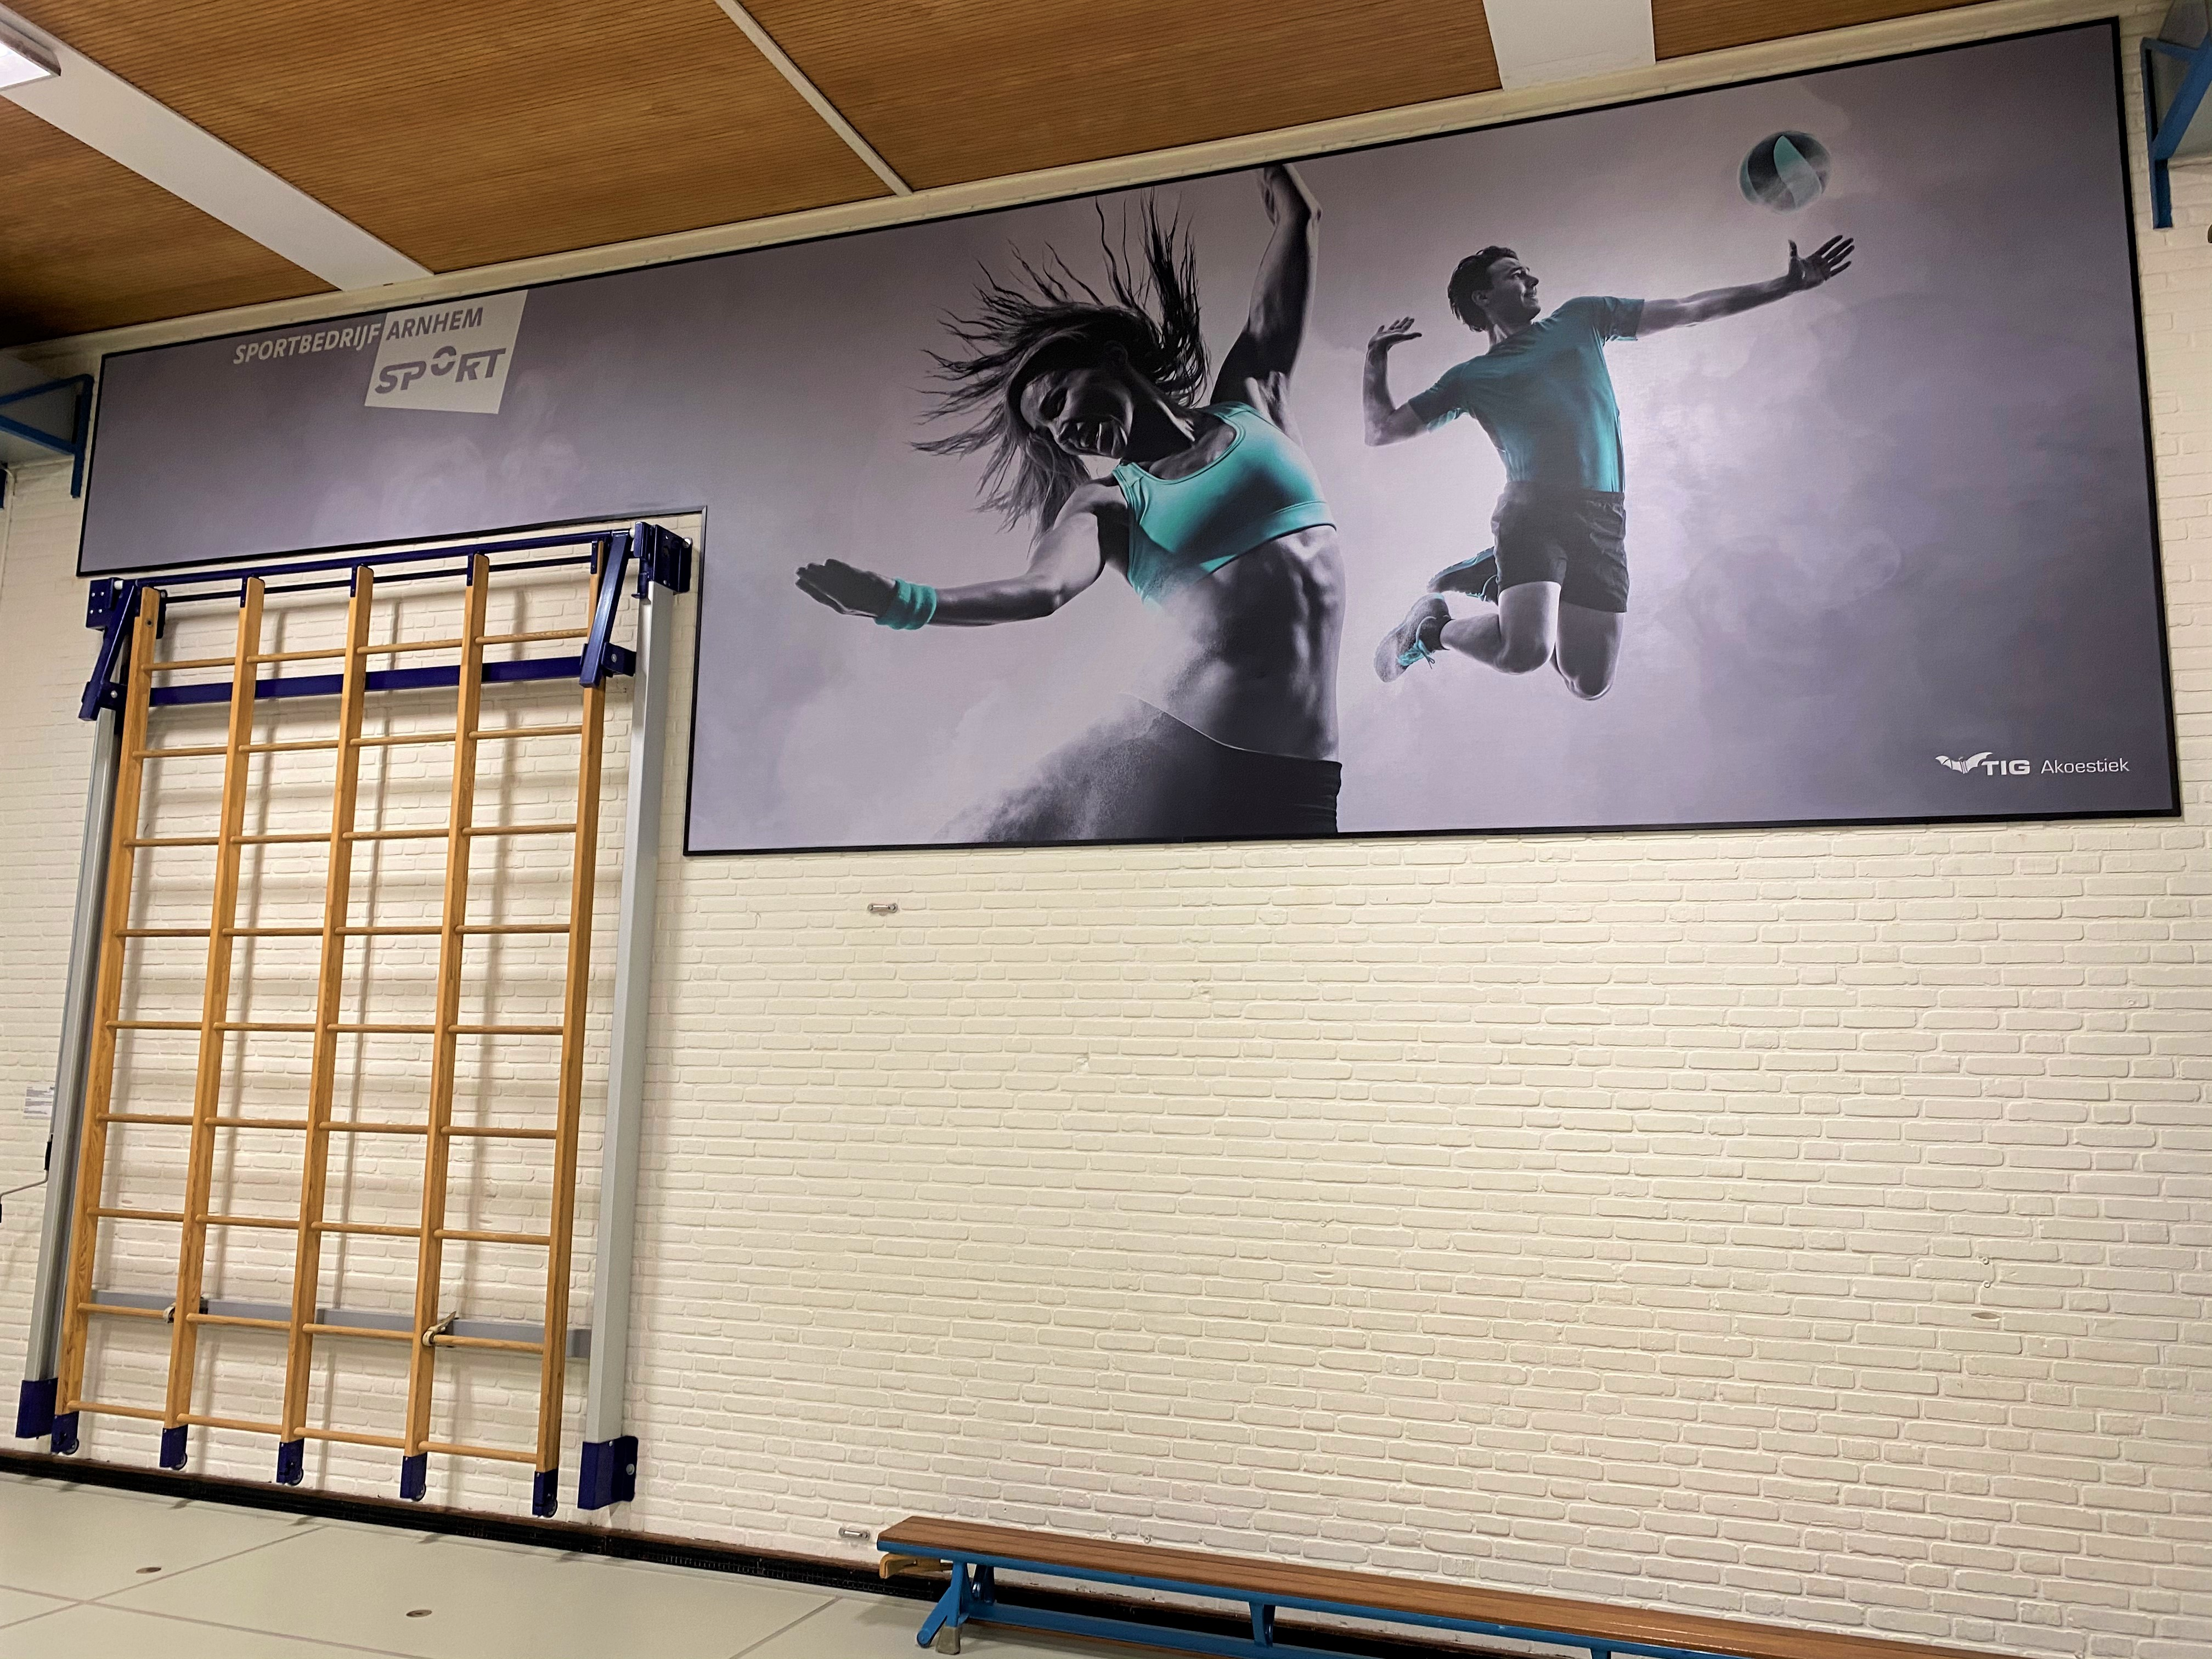 screen gymzaal